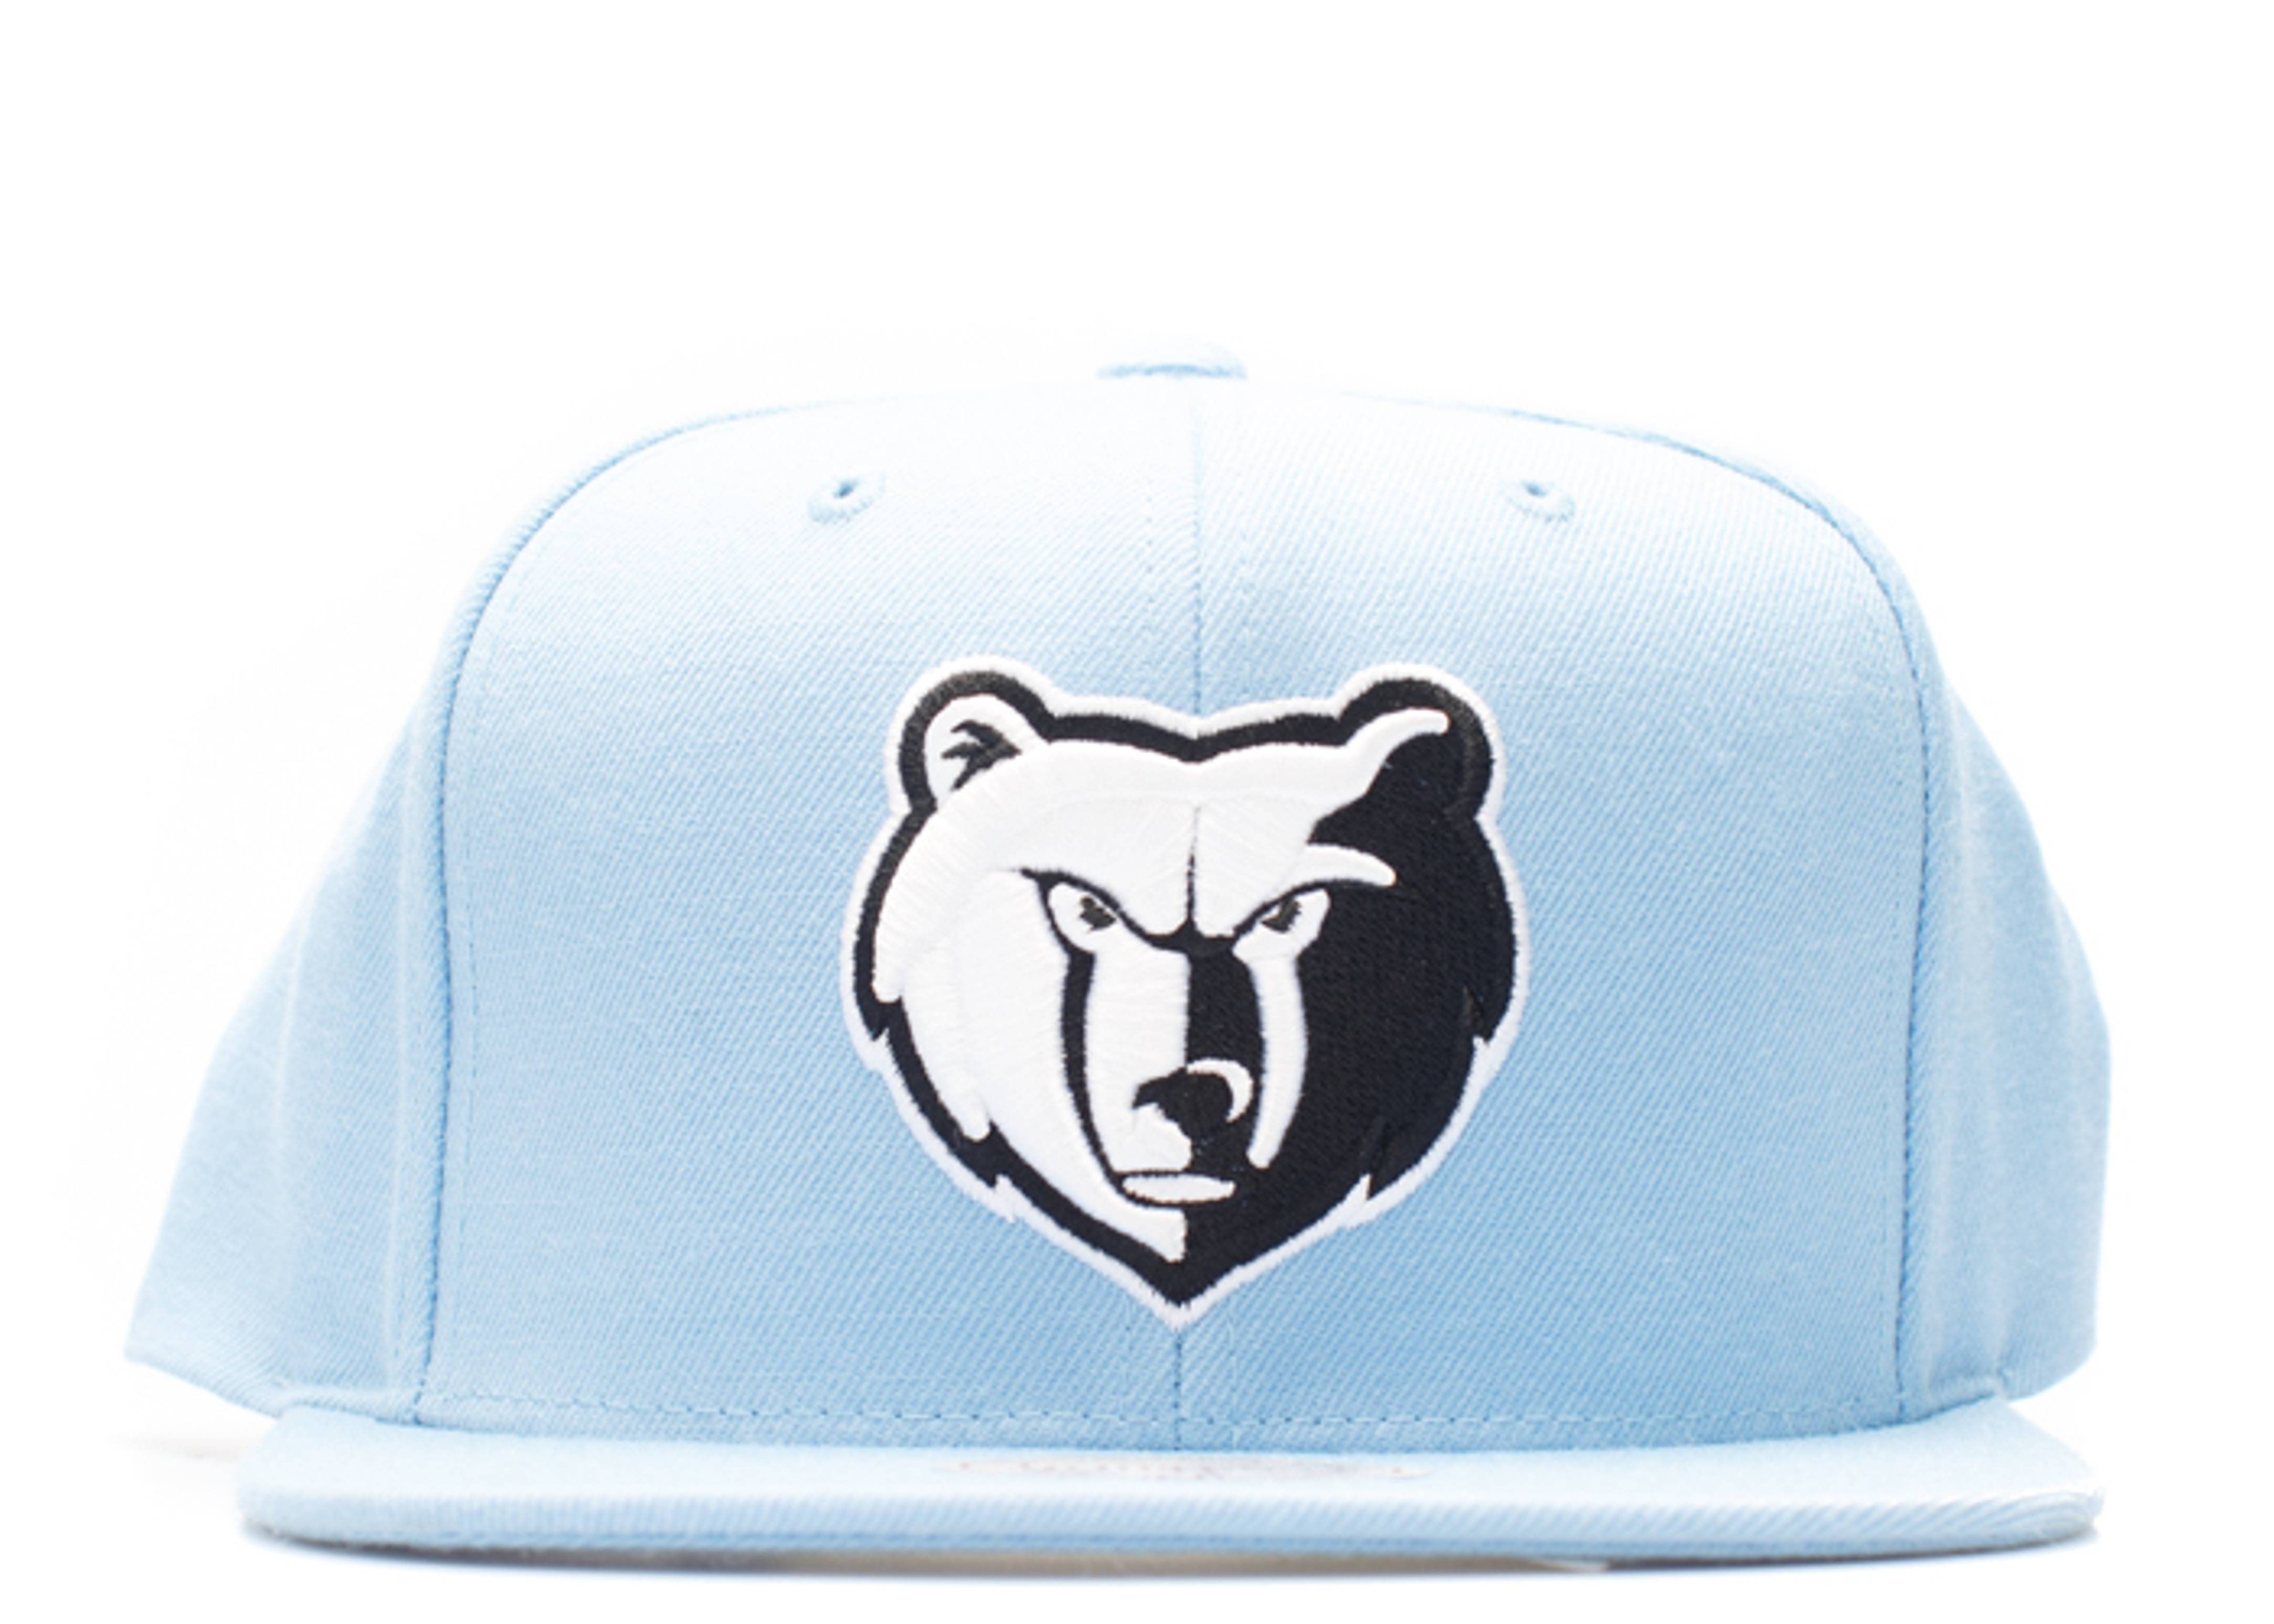 memphis grizzlies snap-back